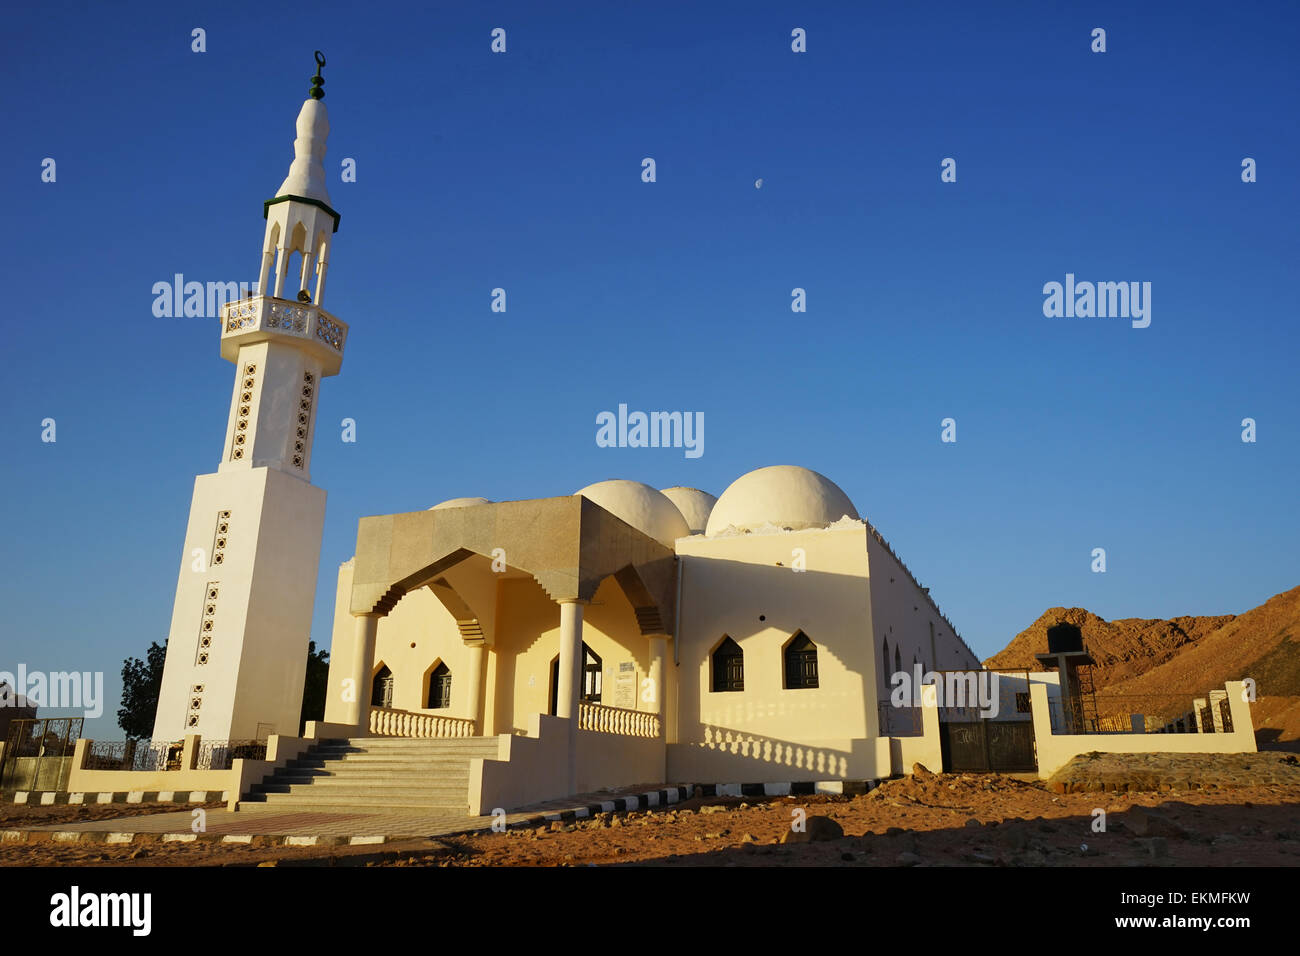 Mosque  in mountains .Sunrise and  moon .Dahab. South Sinai. Egypt . - Stock Image